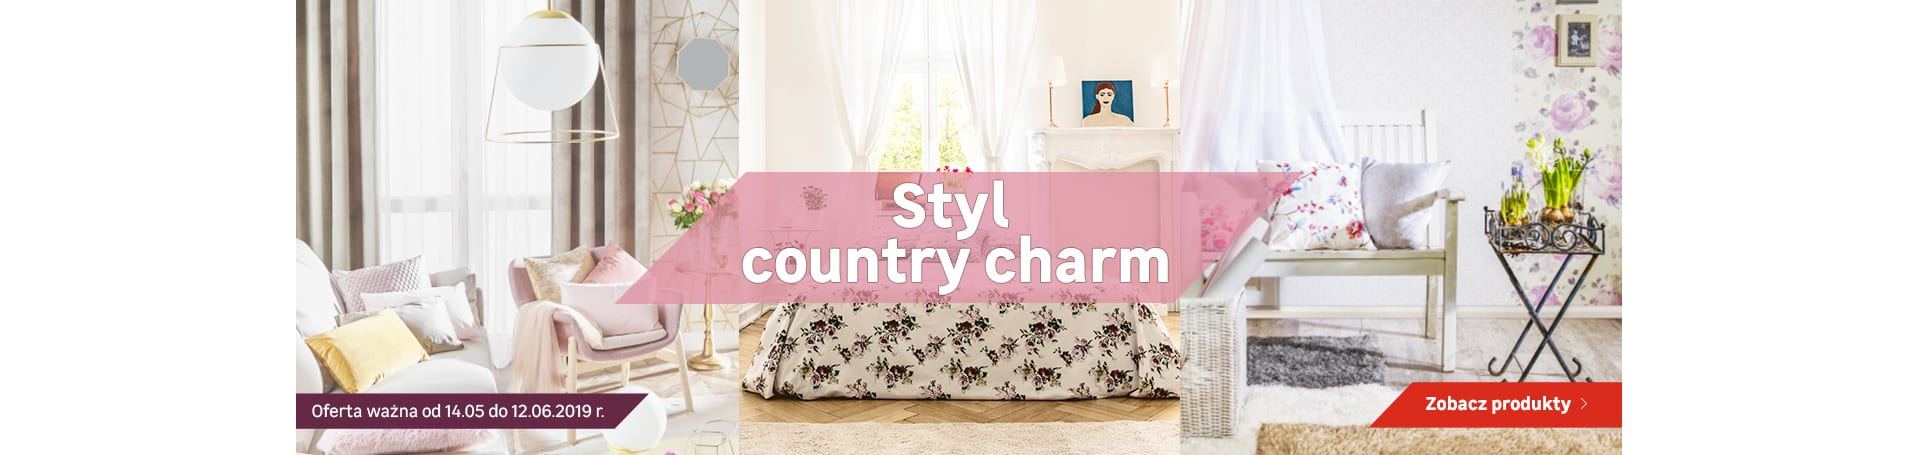 rr-country-charm-14.05-12.06.2019-1323x455